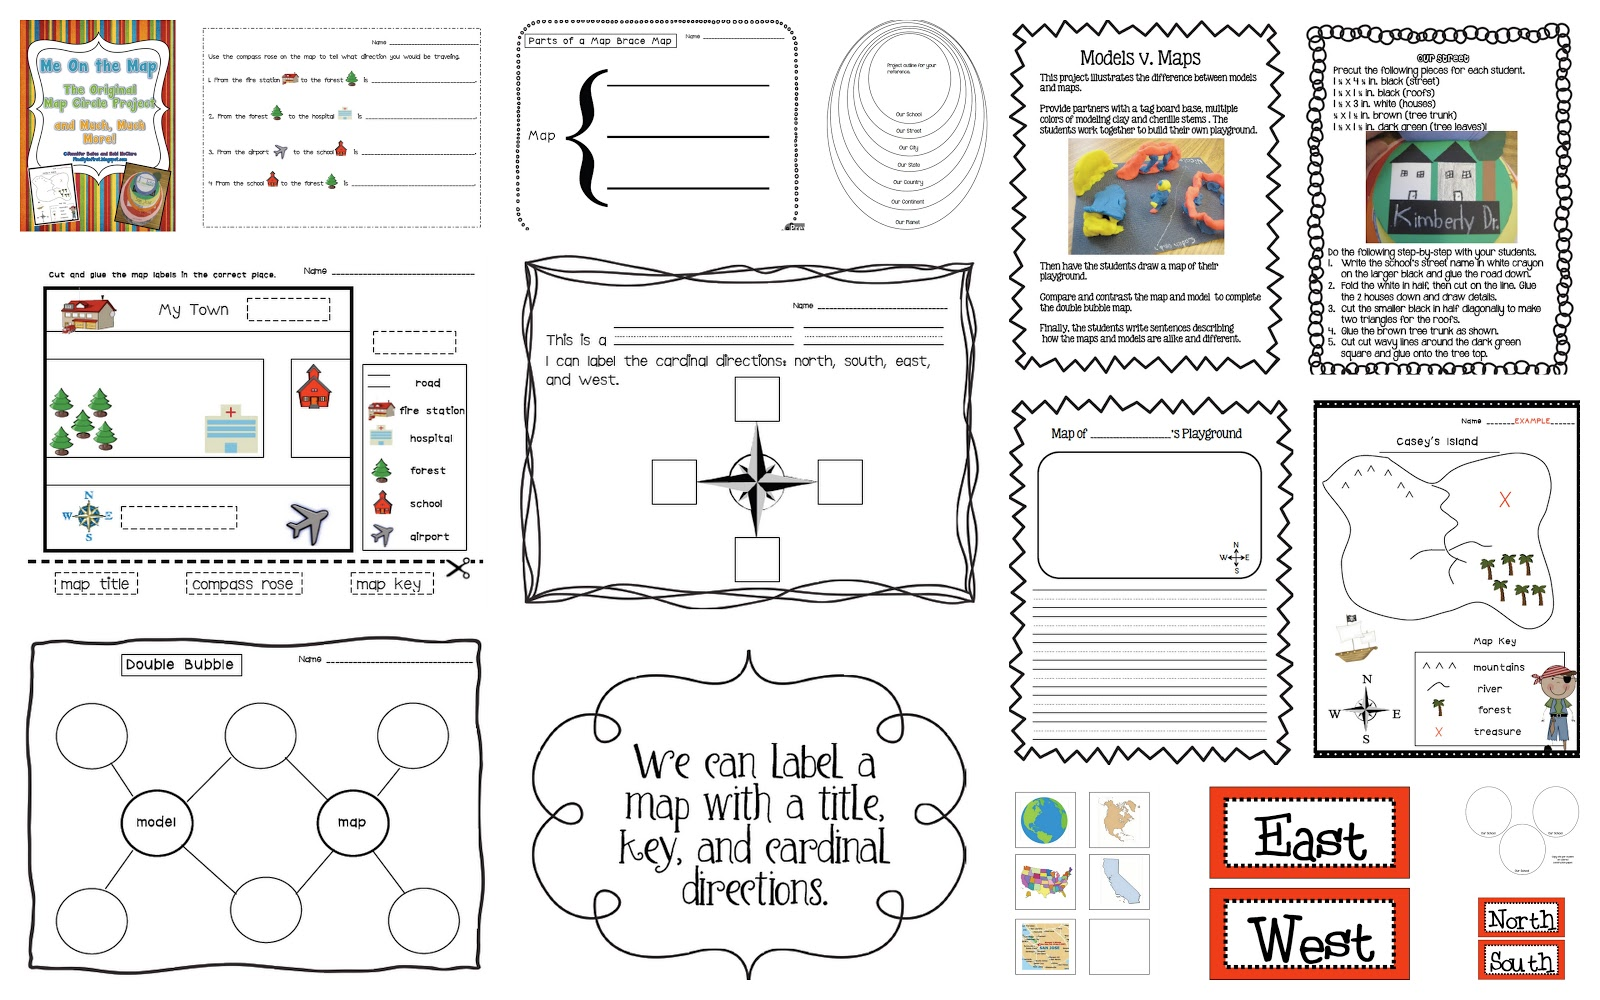 Finally in First: Me on the Map Unit printable worksheets, alphabet worksheets, grade worksheets, worksheets for teachers, free worksheets, and math worksheets Cardinal Direction Worksheet 1000 x 1600